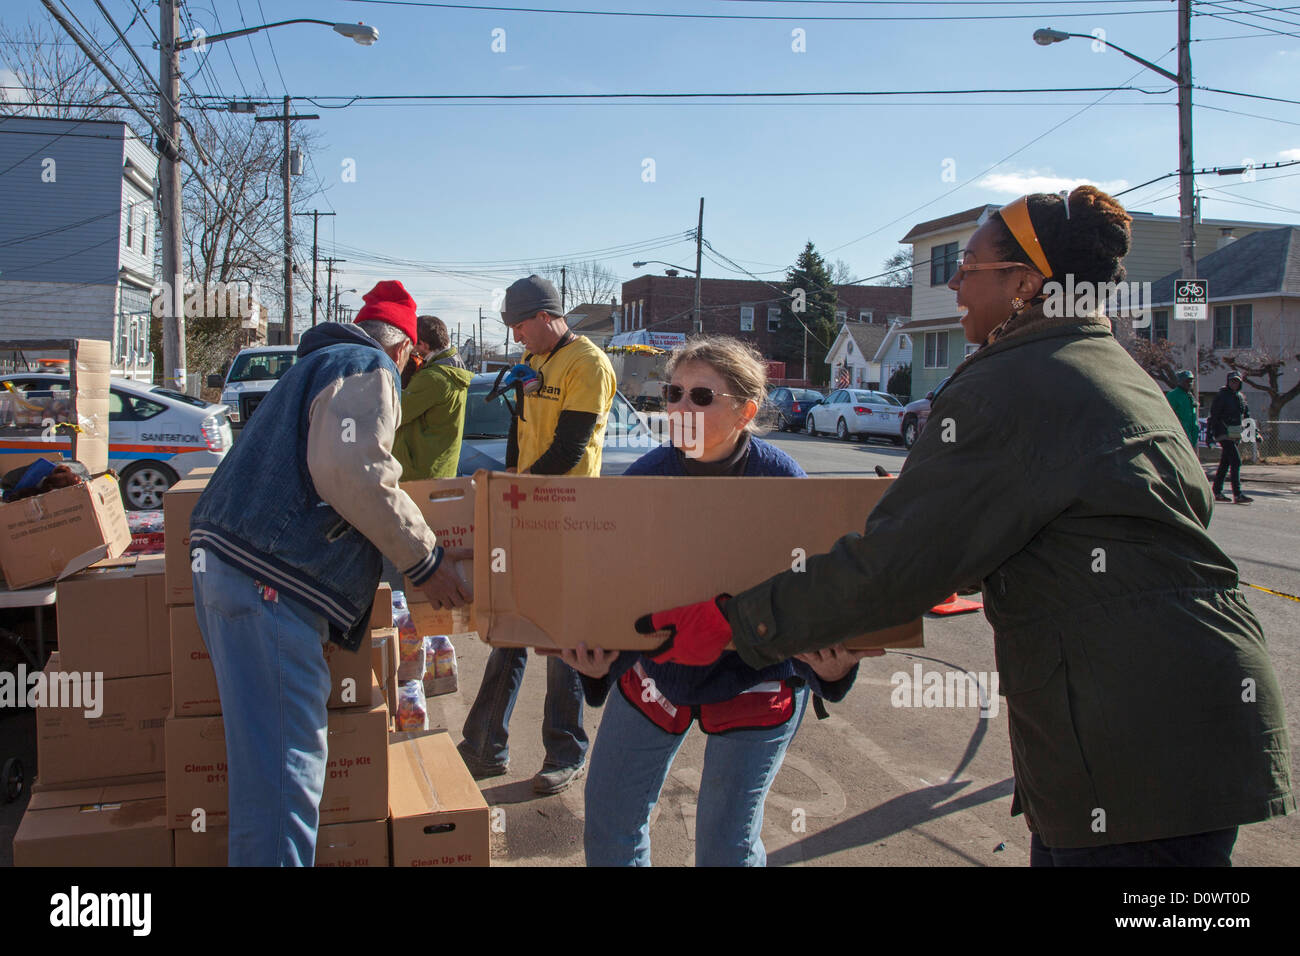 New York, NY - Volunteers on Staten Island help with the recovery from Hurricane Sandy. - Stock Image